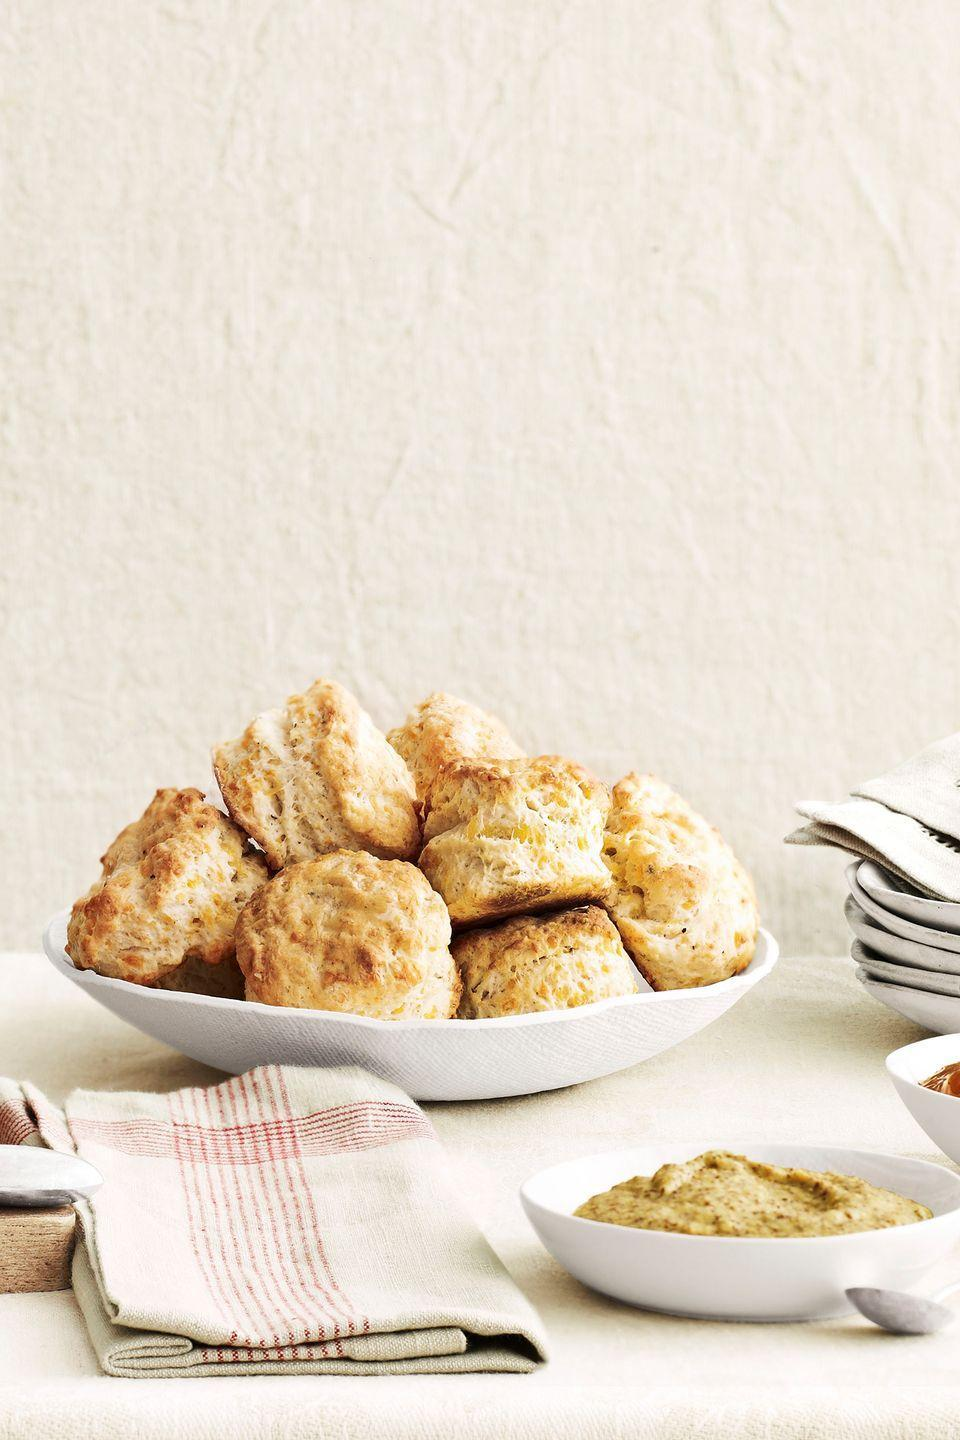 """<p>If savory's more her thing, whip up a batch of fluffy homemade biscuits (with or without gravy!).</p><p><strong><a href=""""https://www.countryliving.com/food-drinks/recipes/a4268/cheddar-biscuits-recipe-clv1212/"""" rel=""""nofollow noopener"""" target=""""_blank"""" data-ylk=""""slk:Get the recipe"""" class=""""link rapid-noclick-resp"""">Get the recipe</a>.</strong></p><p><a class=""""link rapid-noclick-resp"""" href=""""https://www.amazon.com/Nordic-Ware-Natural-Aluminum-Commercial/dp/B0049C2S32/?tag=syn-yahoo-20&ascsubtag=%5Bartid%7C10050.g.1681%5Bsrc%7Cyahoo-us"""" rel=""""nofollow noopener"""" target=""""_blank"""" data-ylk=""""slk:SHOP BAKING SHEETS"""">SHOP BAKING SHEETS</a></p>"""